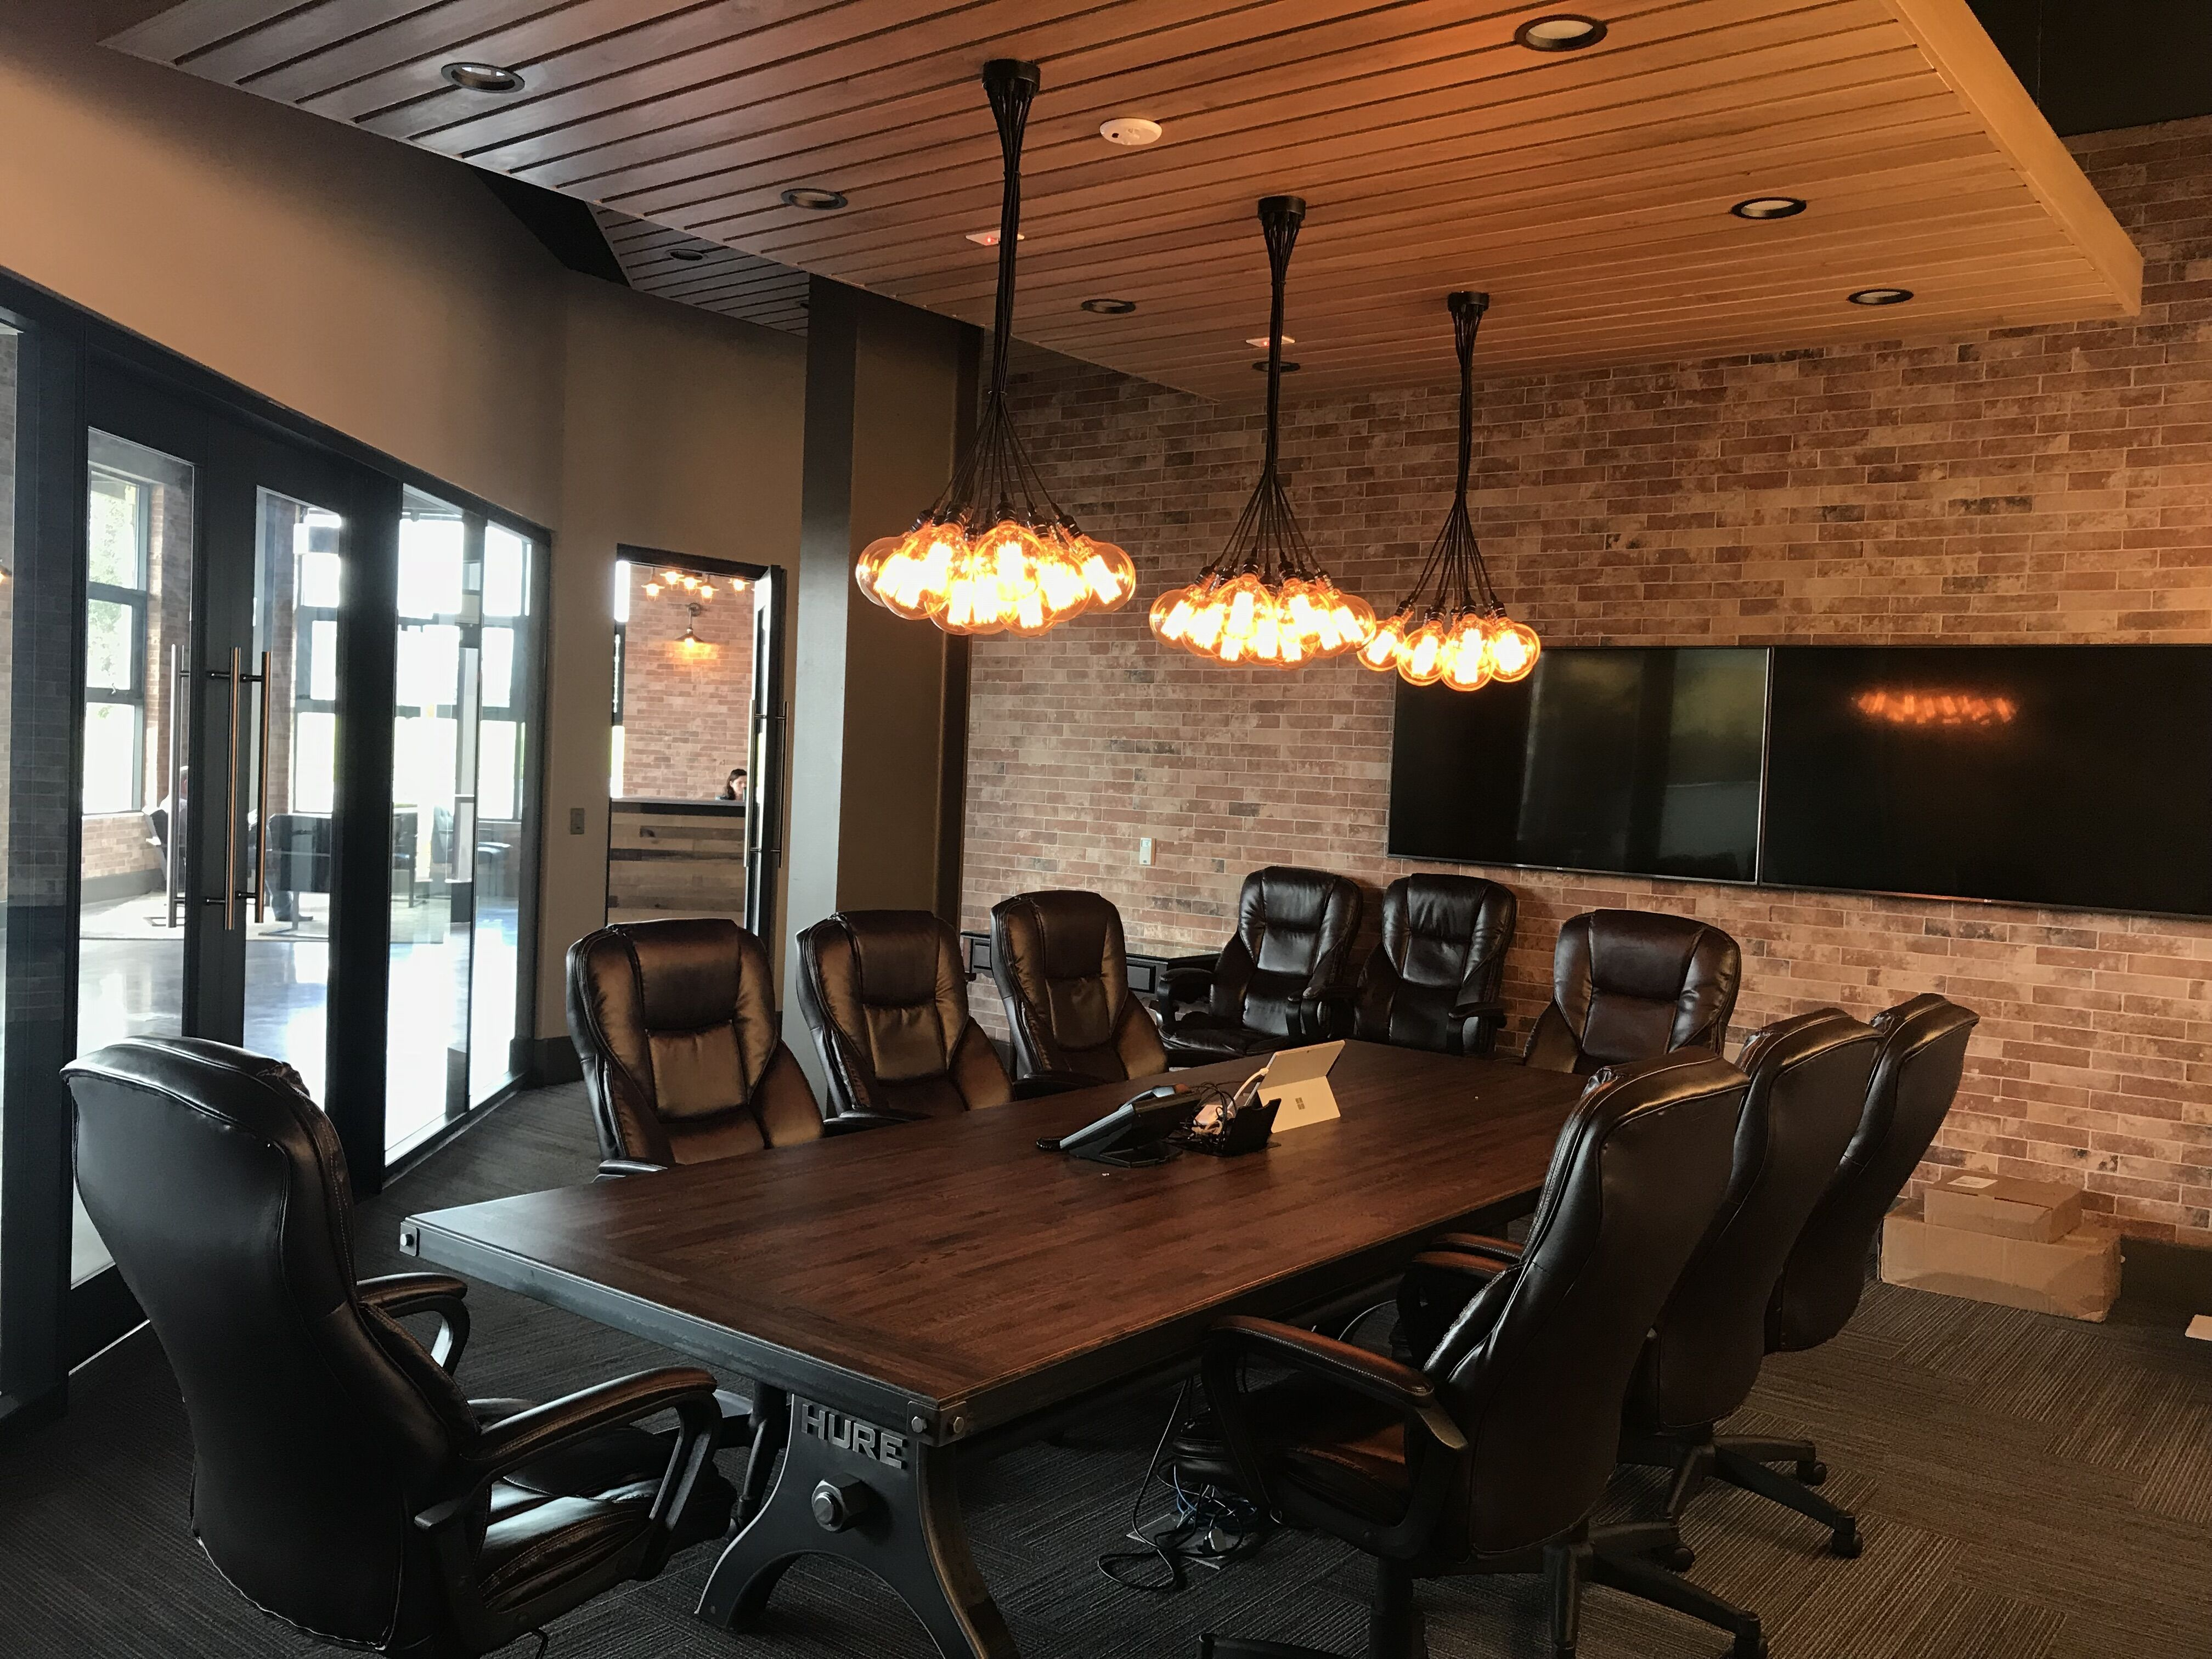 Modern Boardroom With Edison Lighting From Fireflylightingca, Rustic Yet Modern